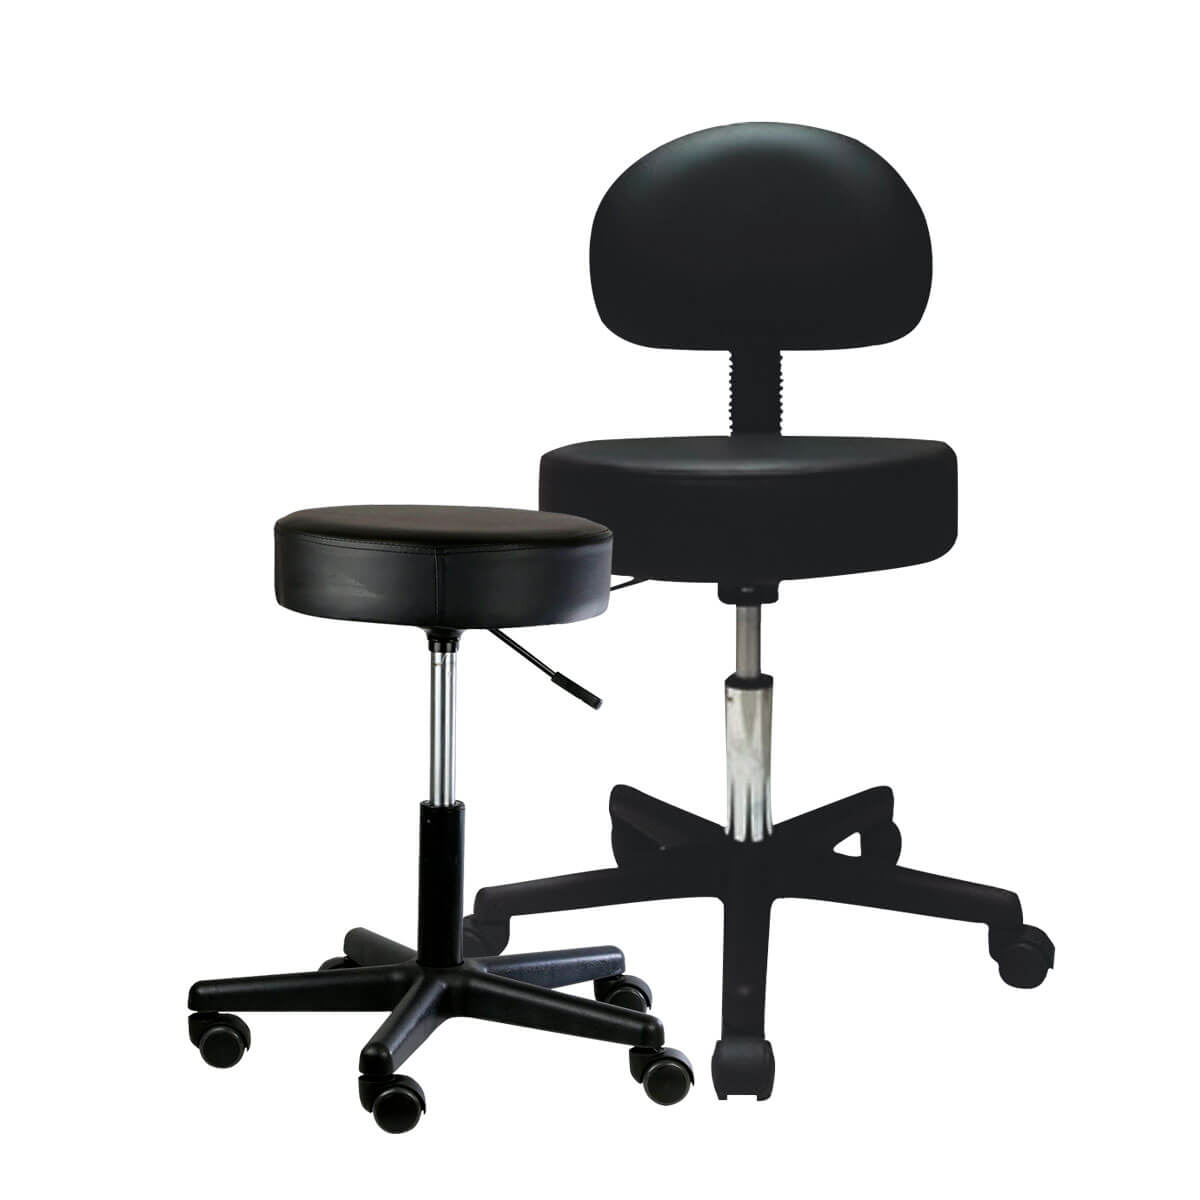 Pneumatic Mobile Stool Chair with Upholstery 18